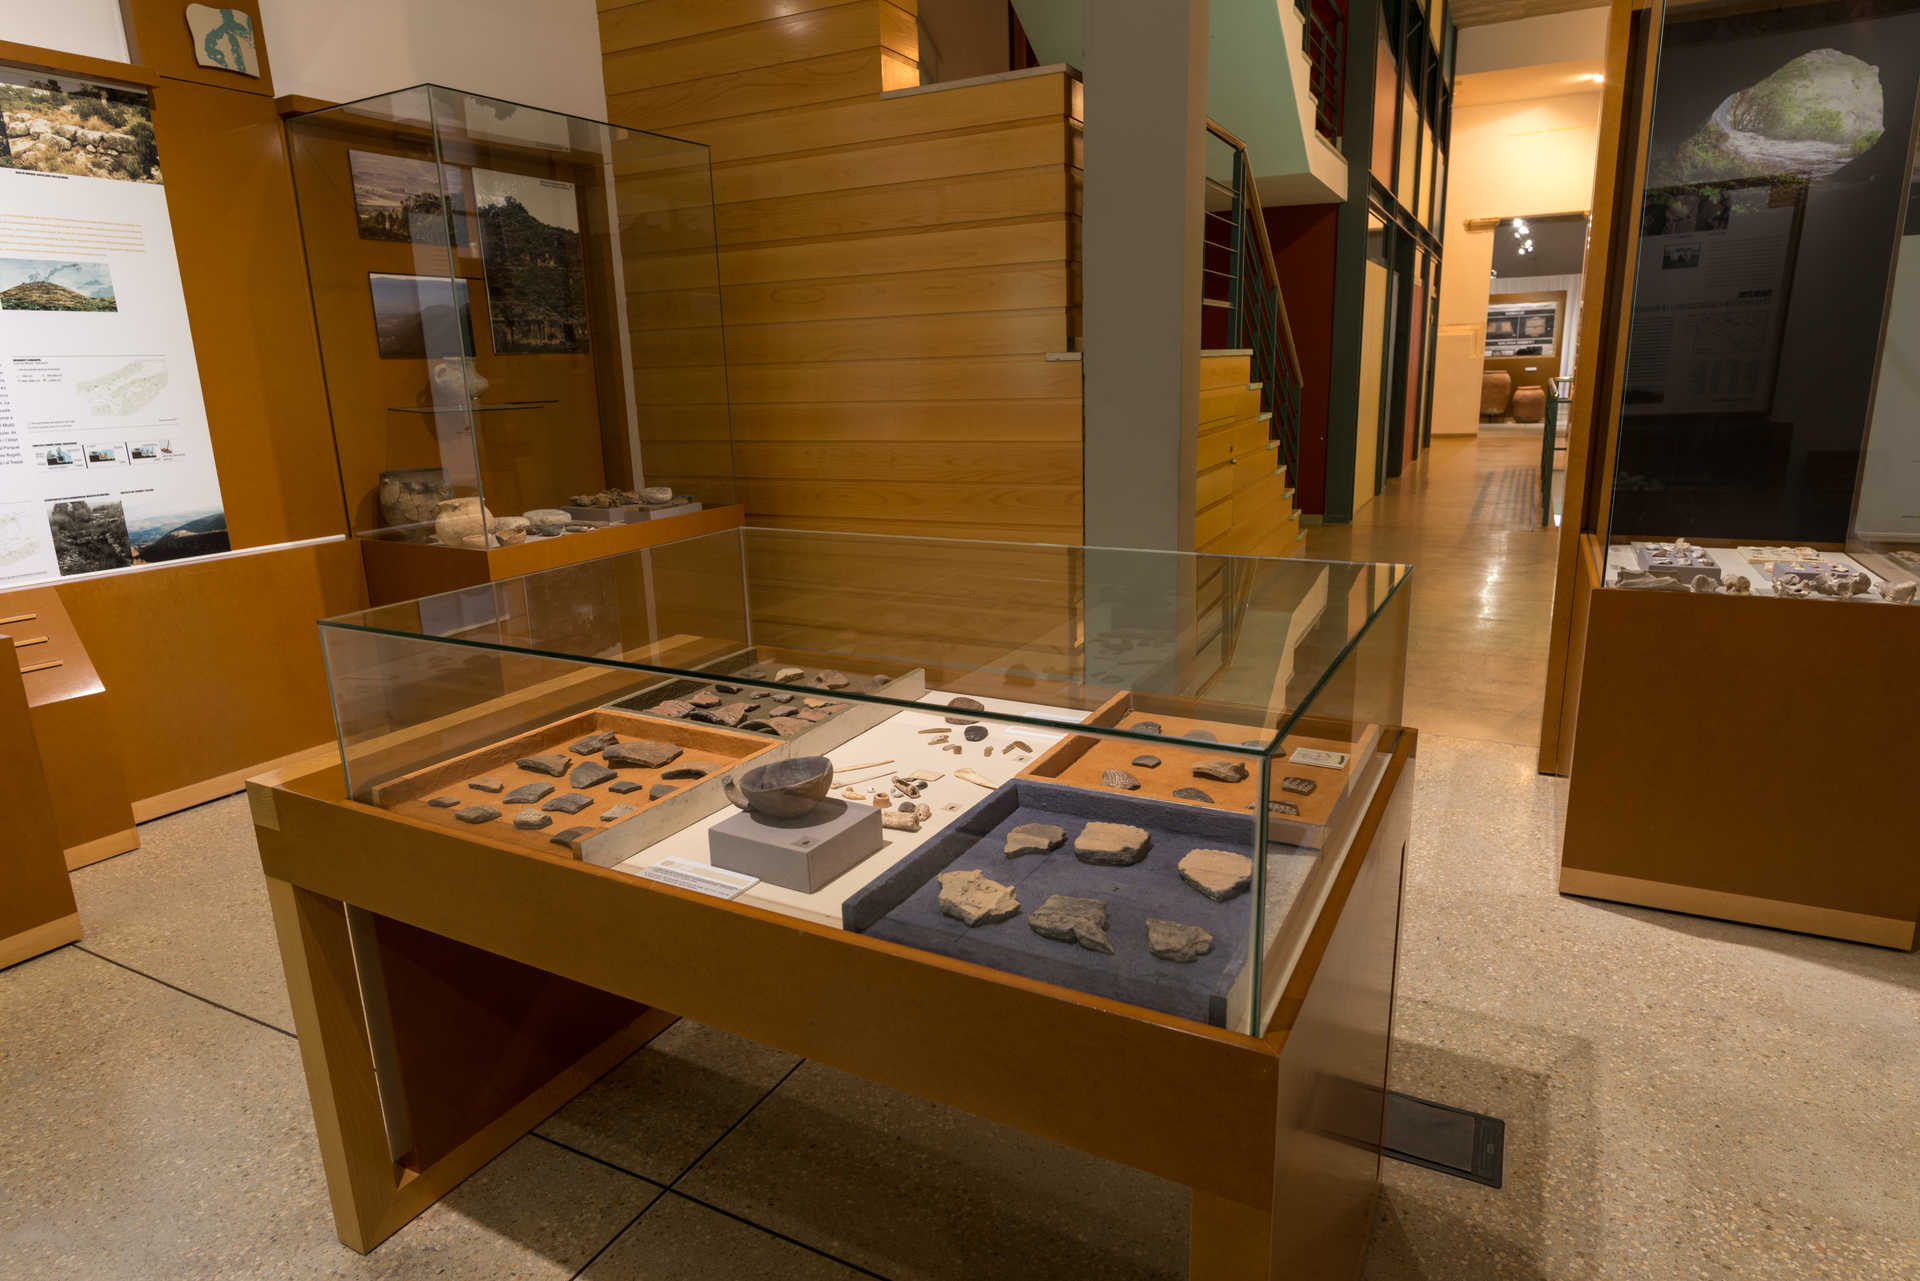 The Ontinyent And La Vall D'albaida- (MAOVA) Museum Of Archaeology